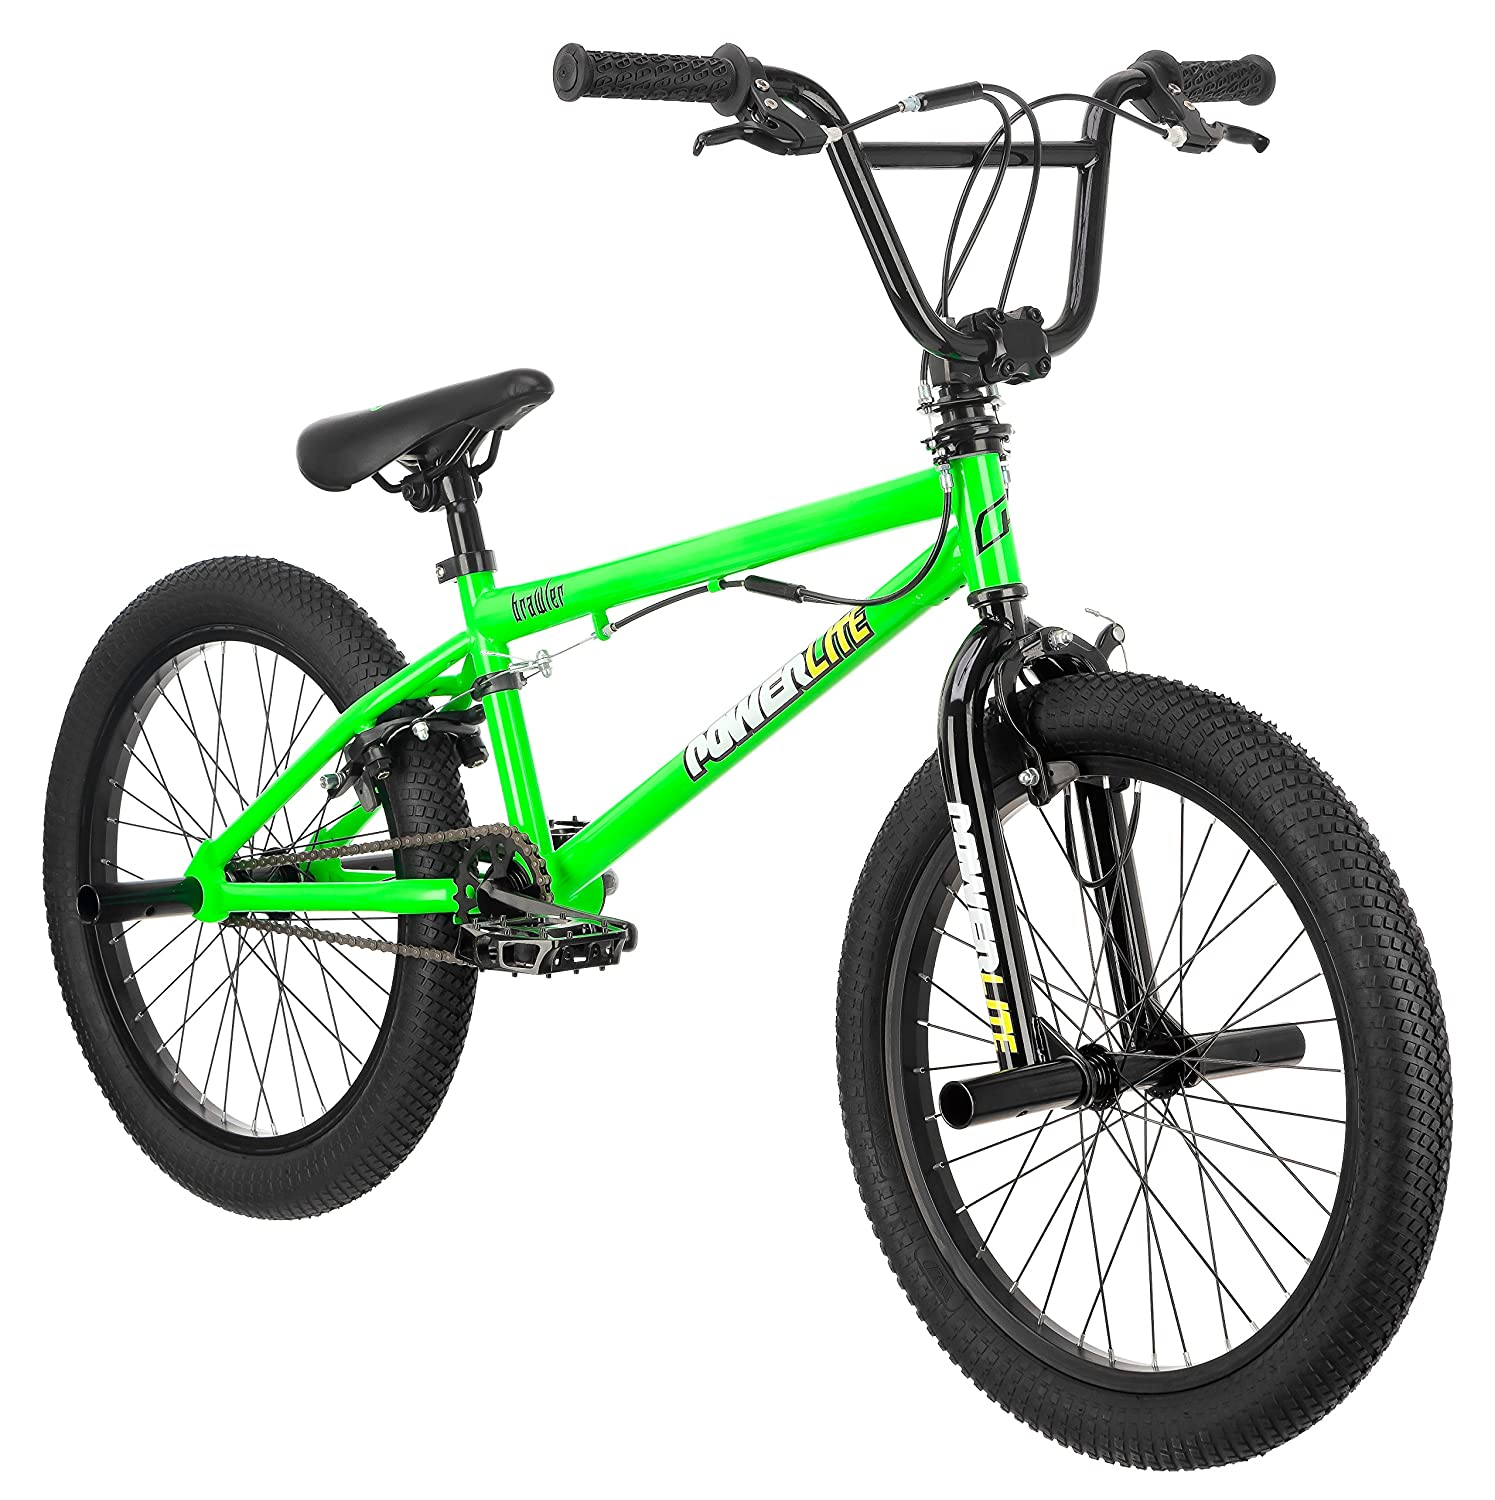 Powerlite Brawler 20 Inch Freestyle Bicycle Neon